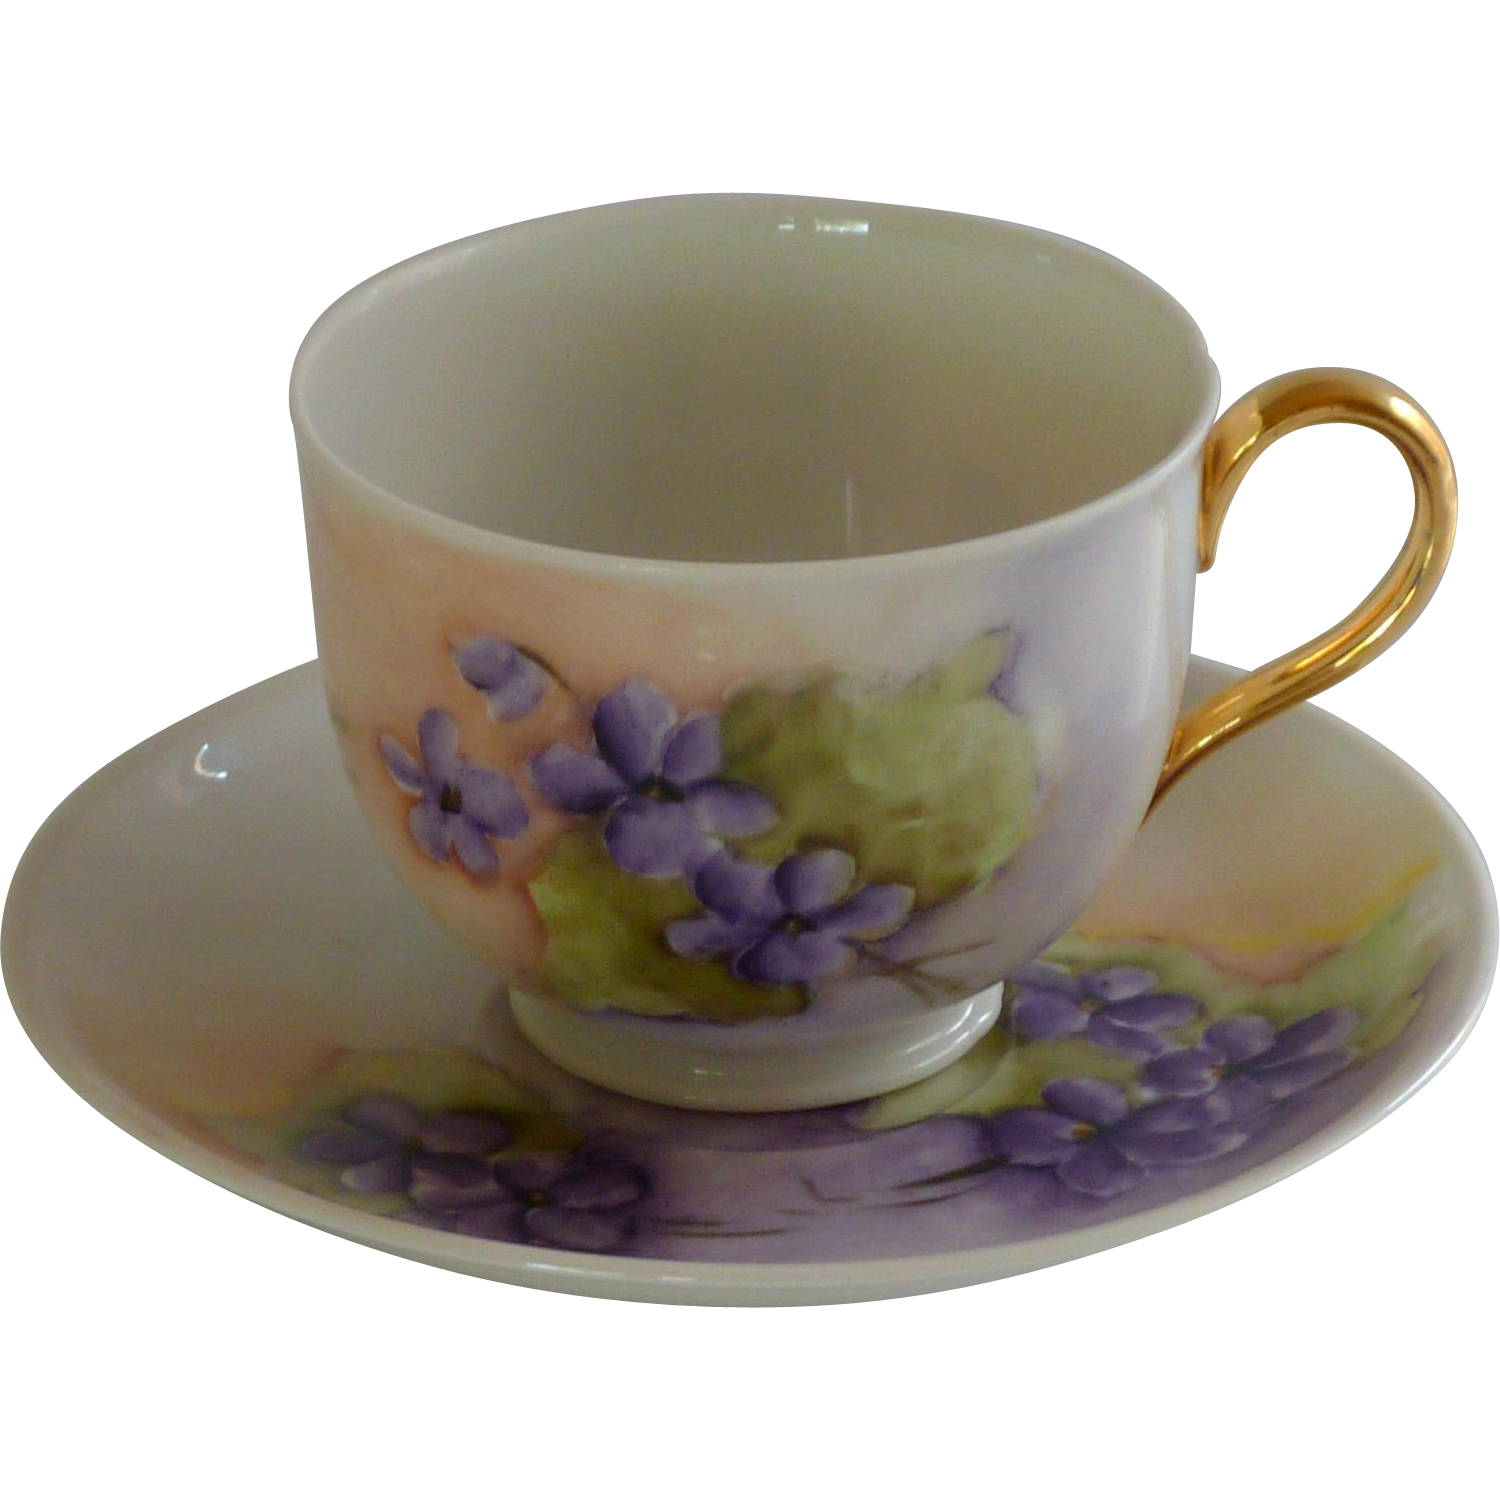 vintage hutschenreuther selb bone china tea cup from rarefinds on ruby lane. Black Bedroom Furniture Sets. Home Design Ideas